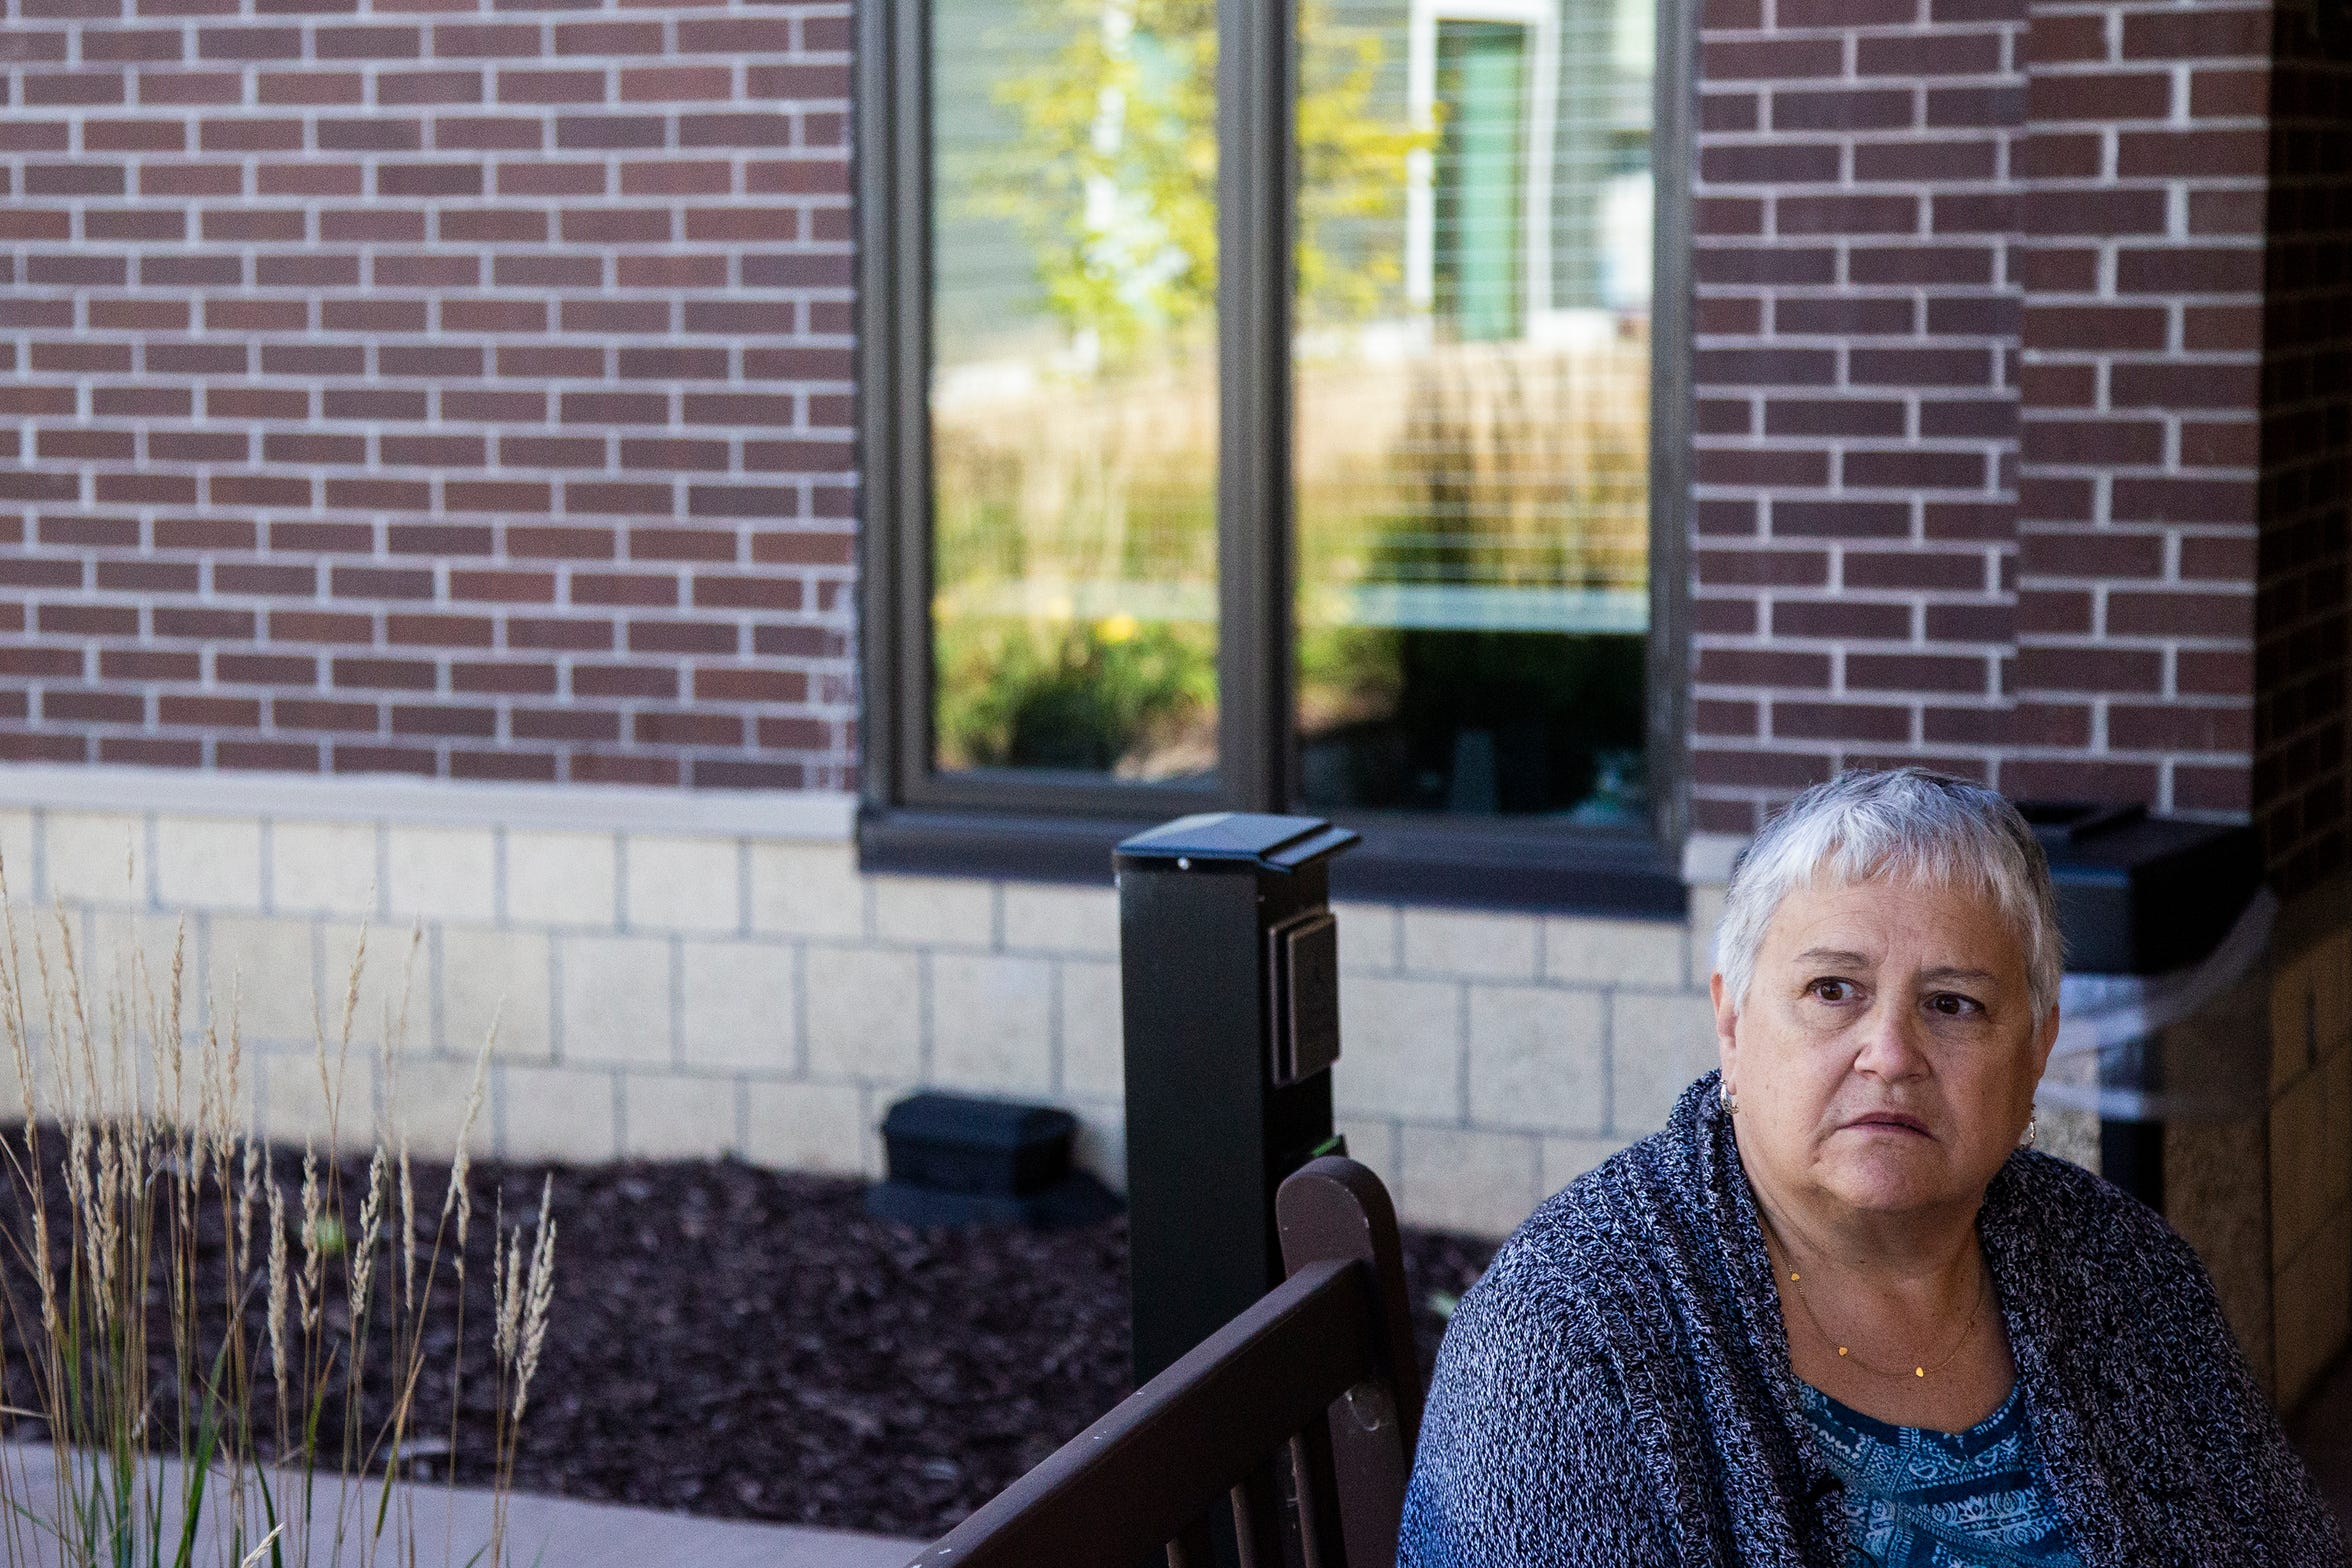 Linnea Clausen, of Craig near Sioux City, talks about some of the challenges she's faced finding care for her husband Gailen, who has severe dementia from a condition called frontotemporal degeneration, outside Bethany Life nursing home on Sunday, Sept. 23, 2018 in Story City.